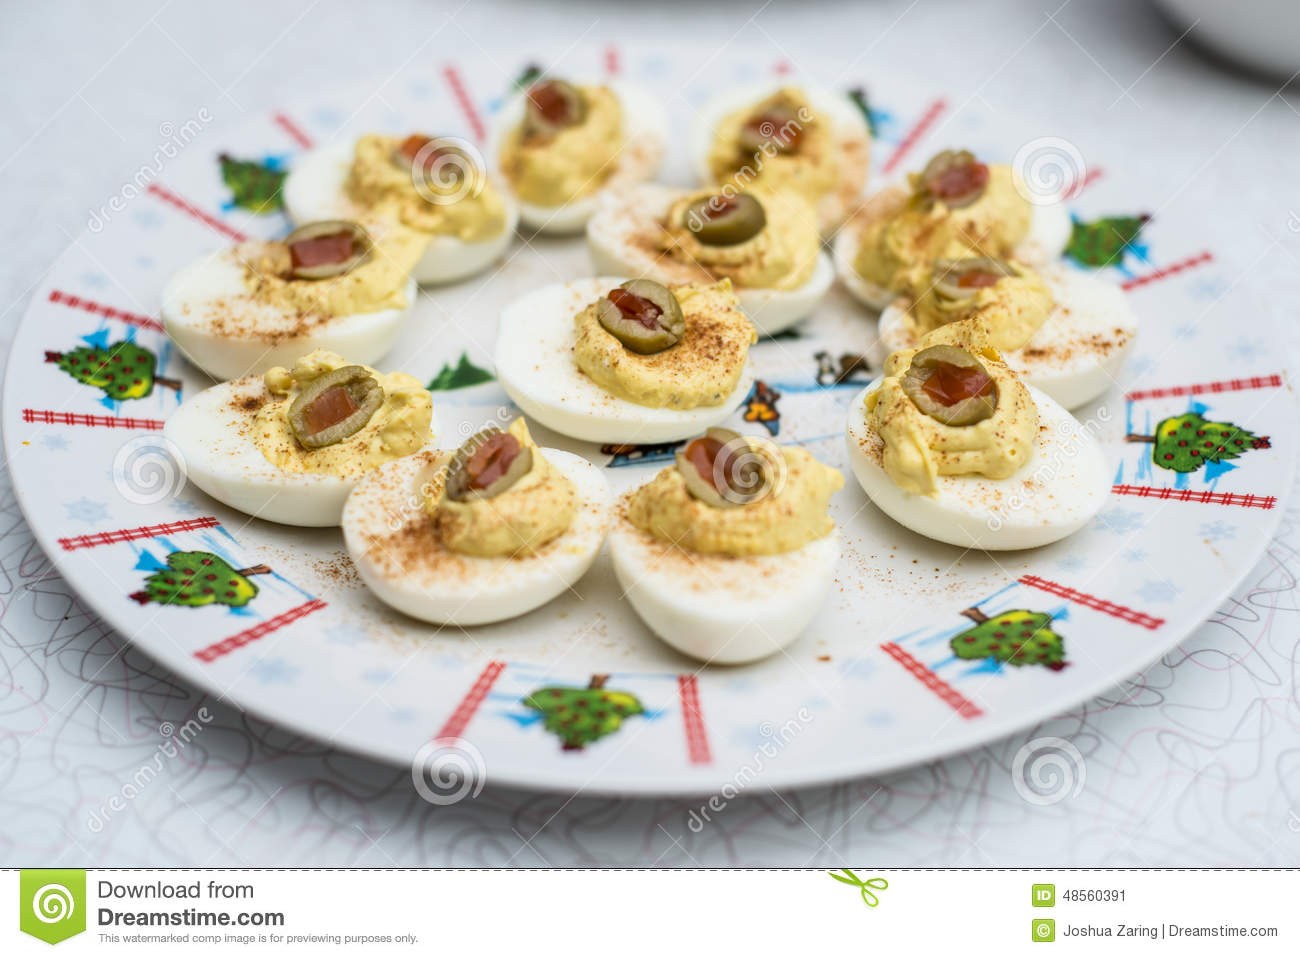 deviled eggs with olives on christmas platter - Christmas Deviled Eggs